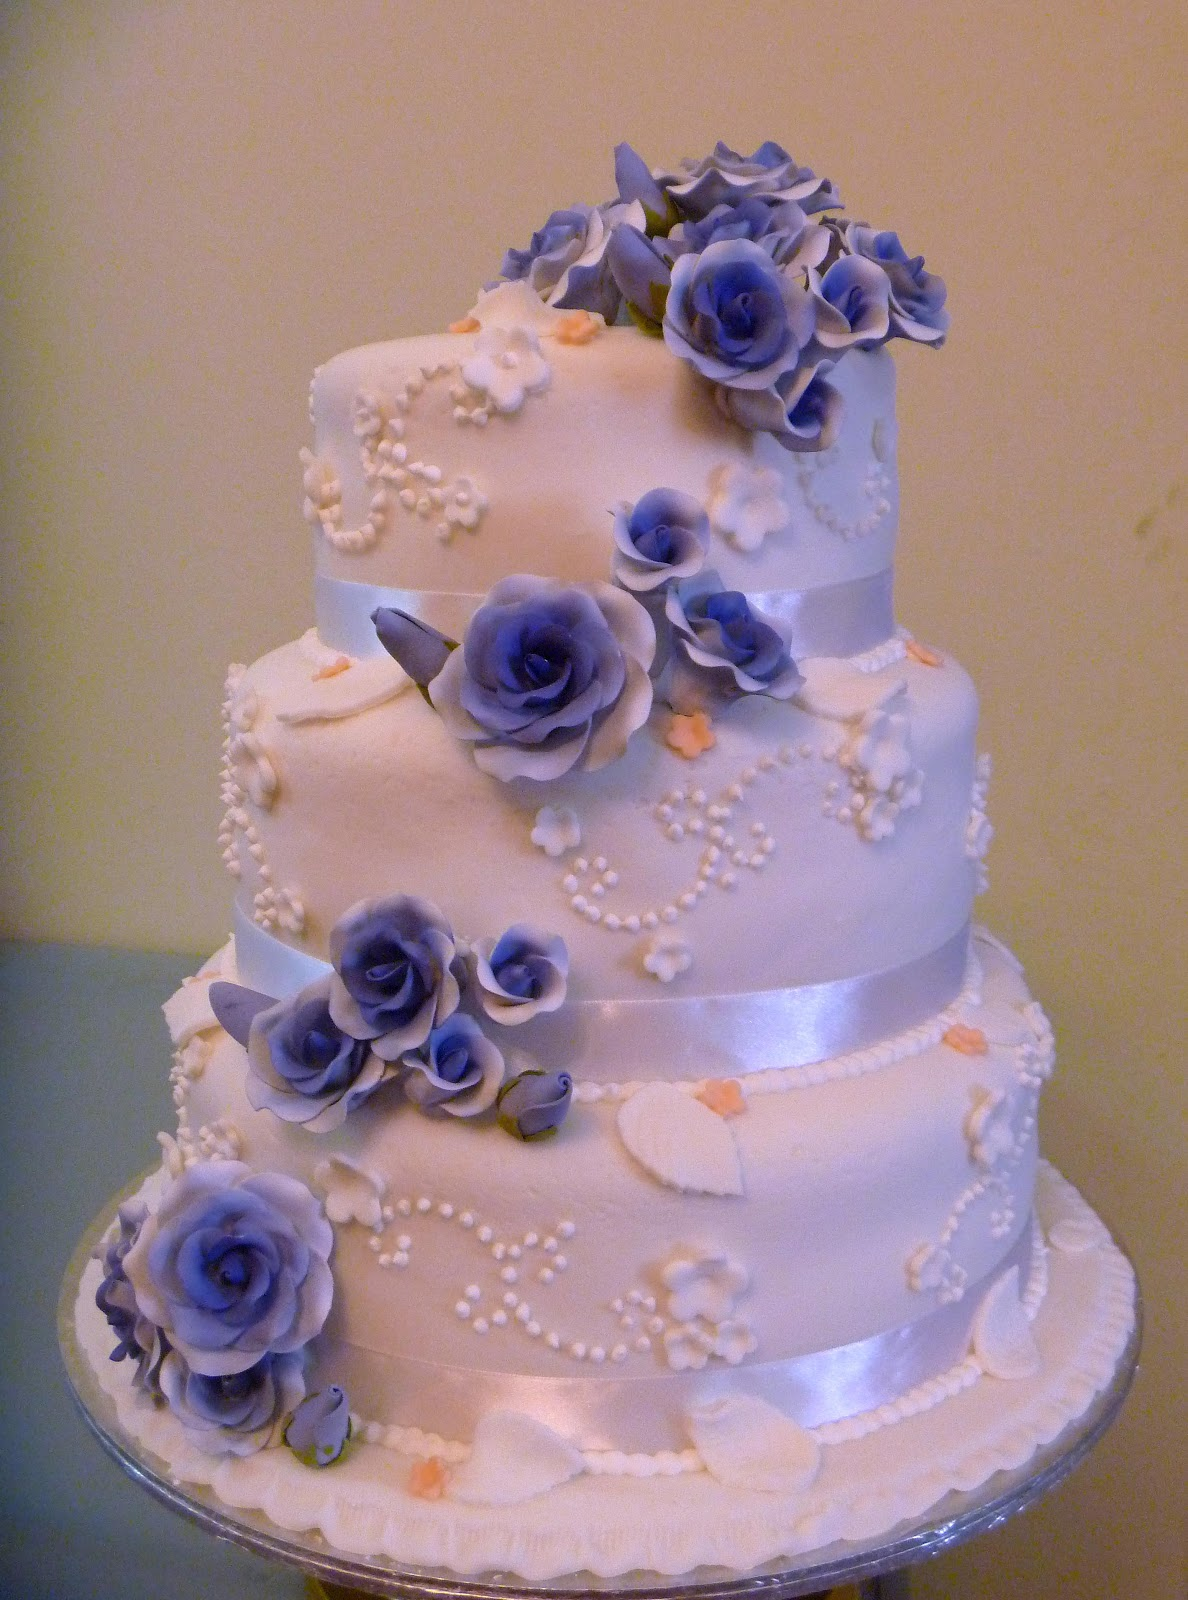 3 Tier Wedding Cakes Prices